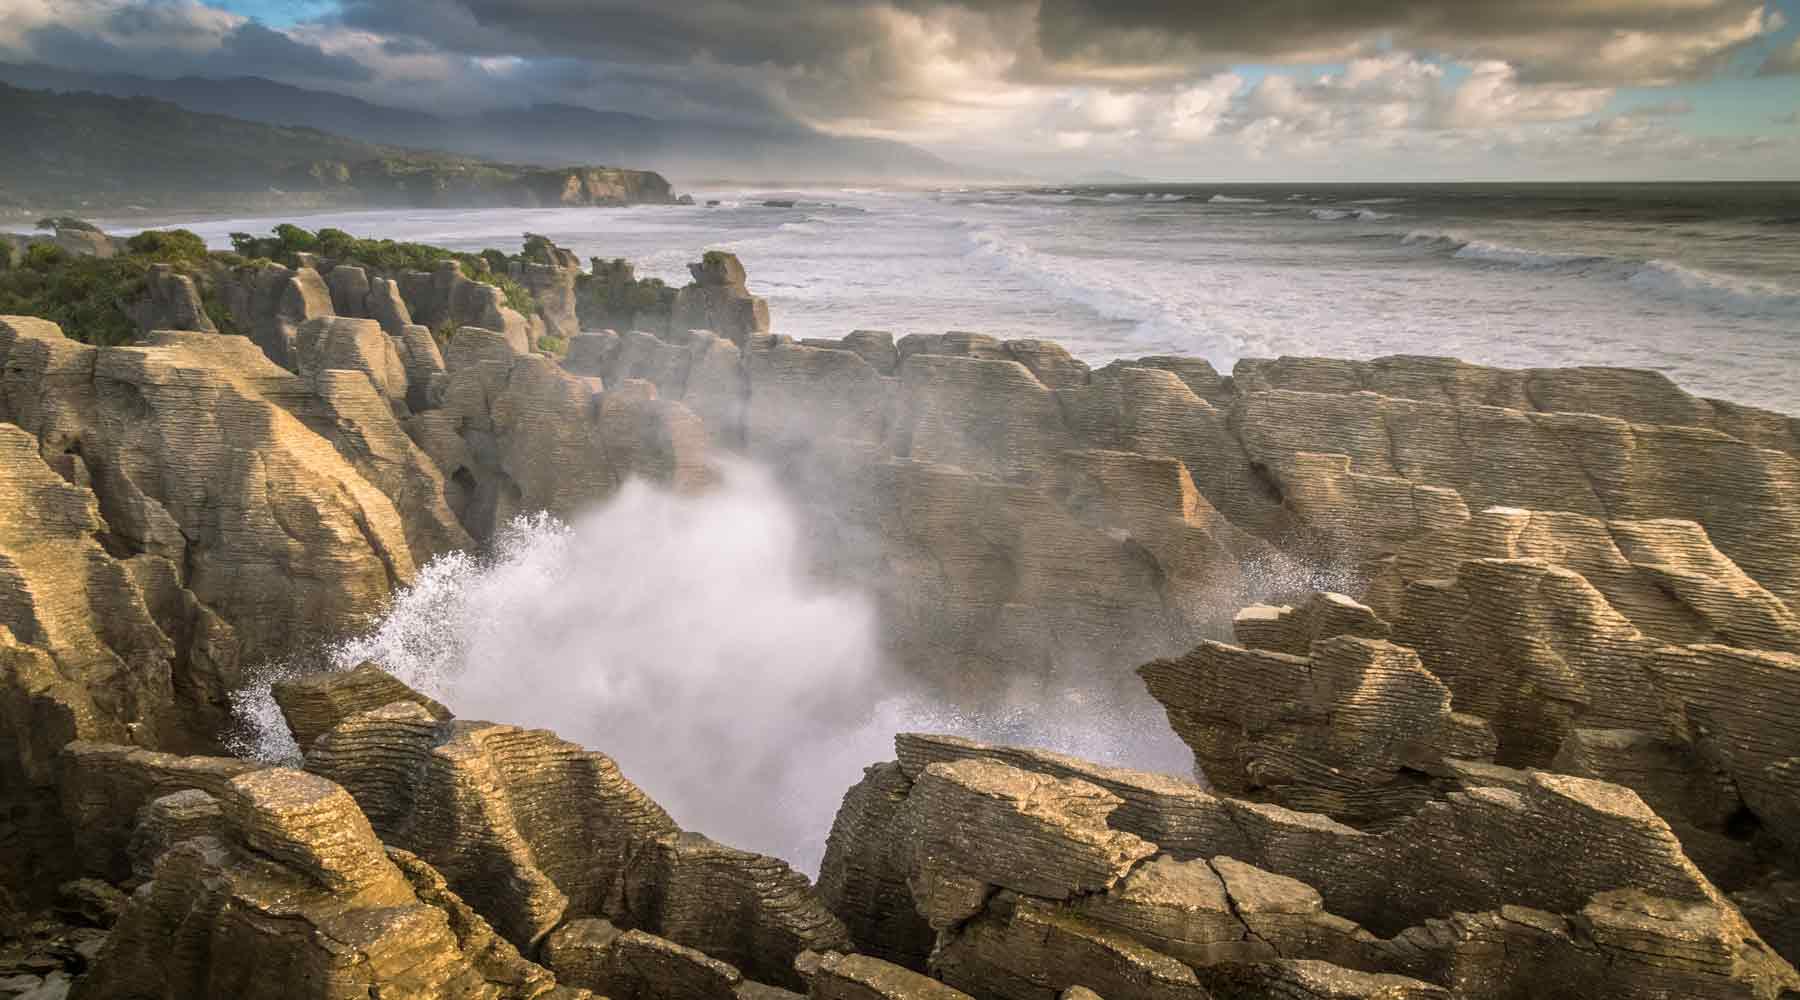 Water coming up through a blow hole in the Punakaiki pancake rocks as the sun goes down to the right